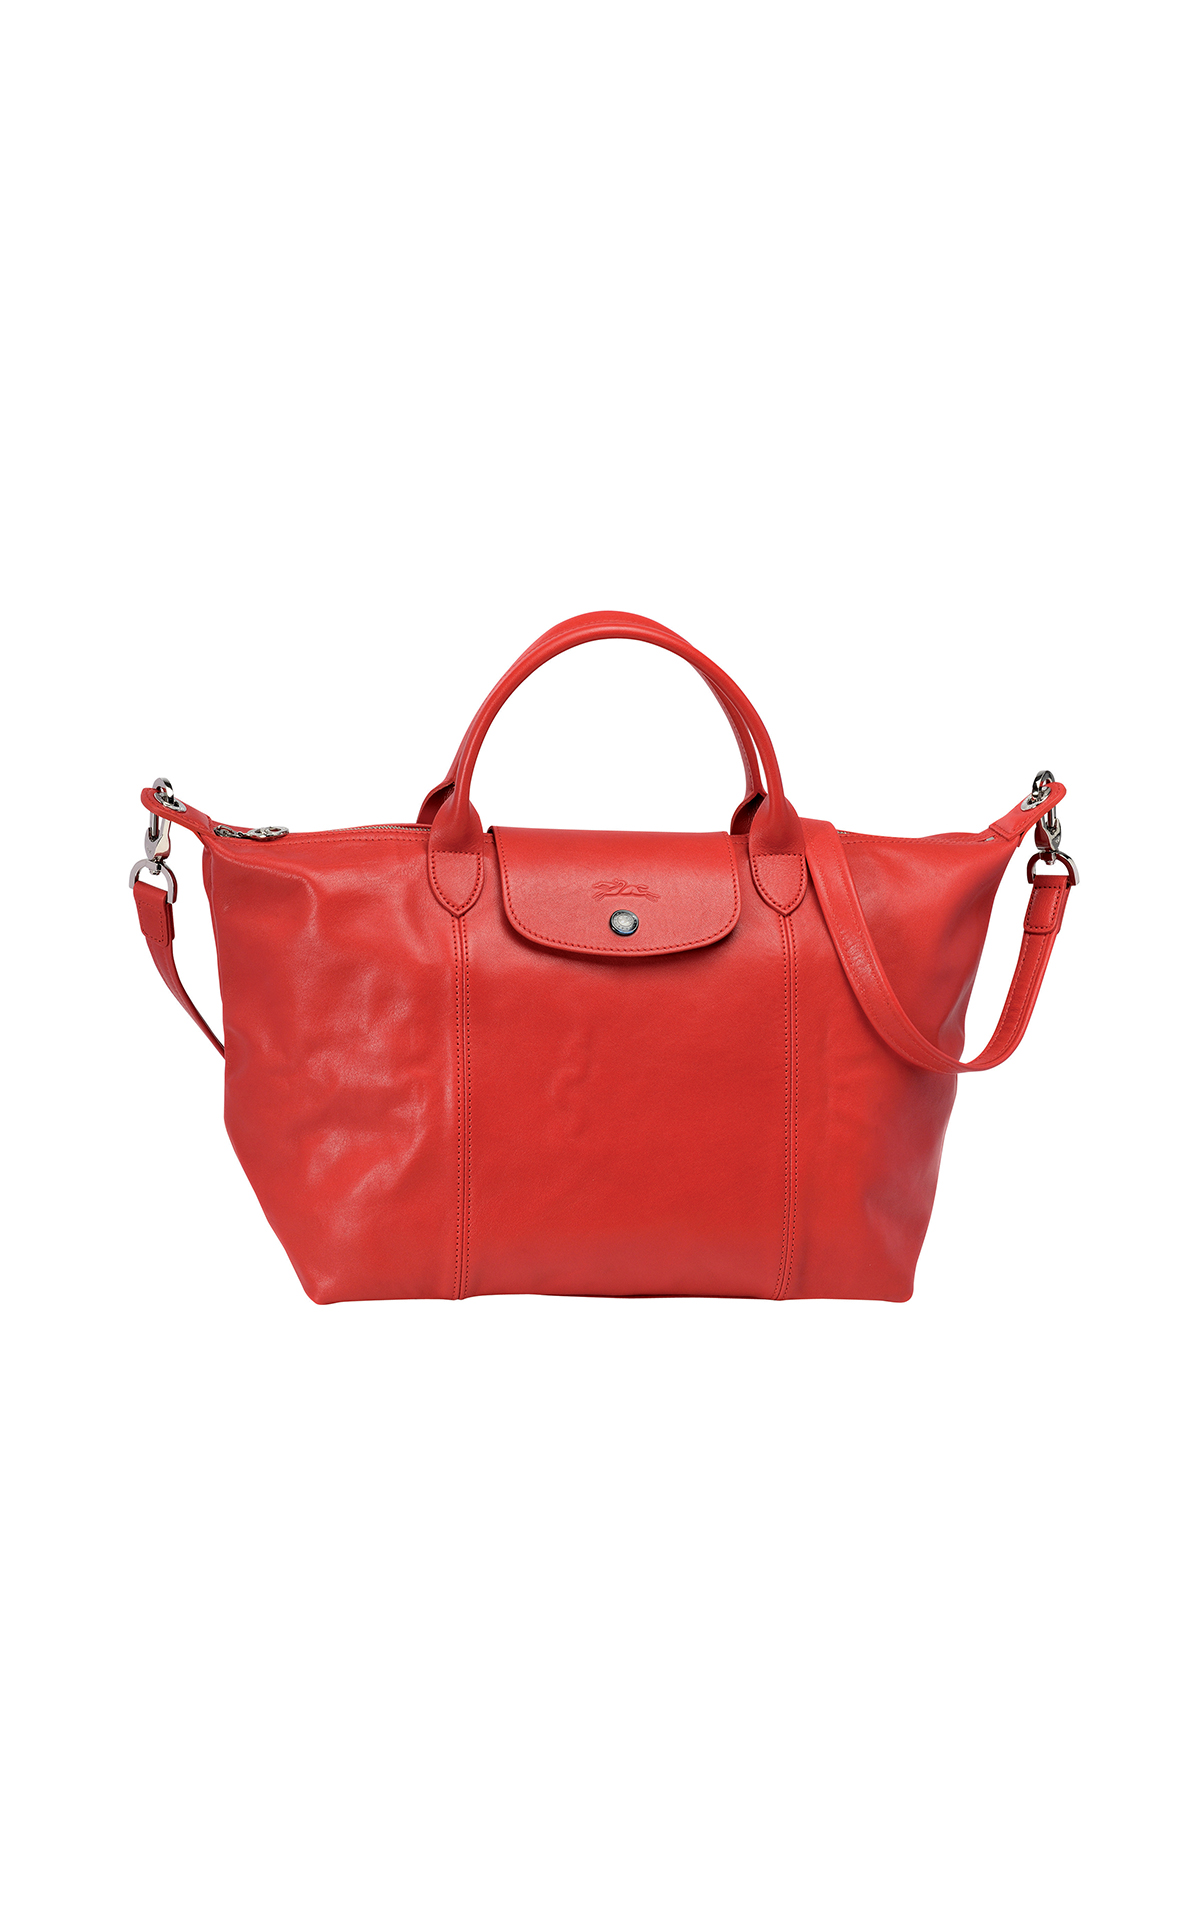 Longchamp Le pliage cuir medium cherry from Bicester Village